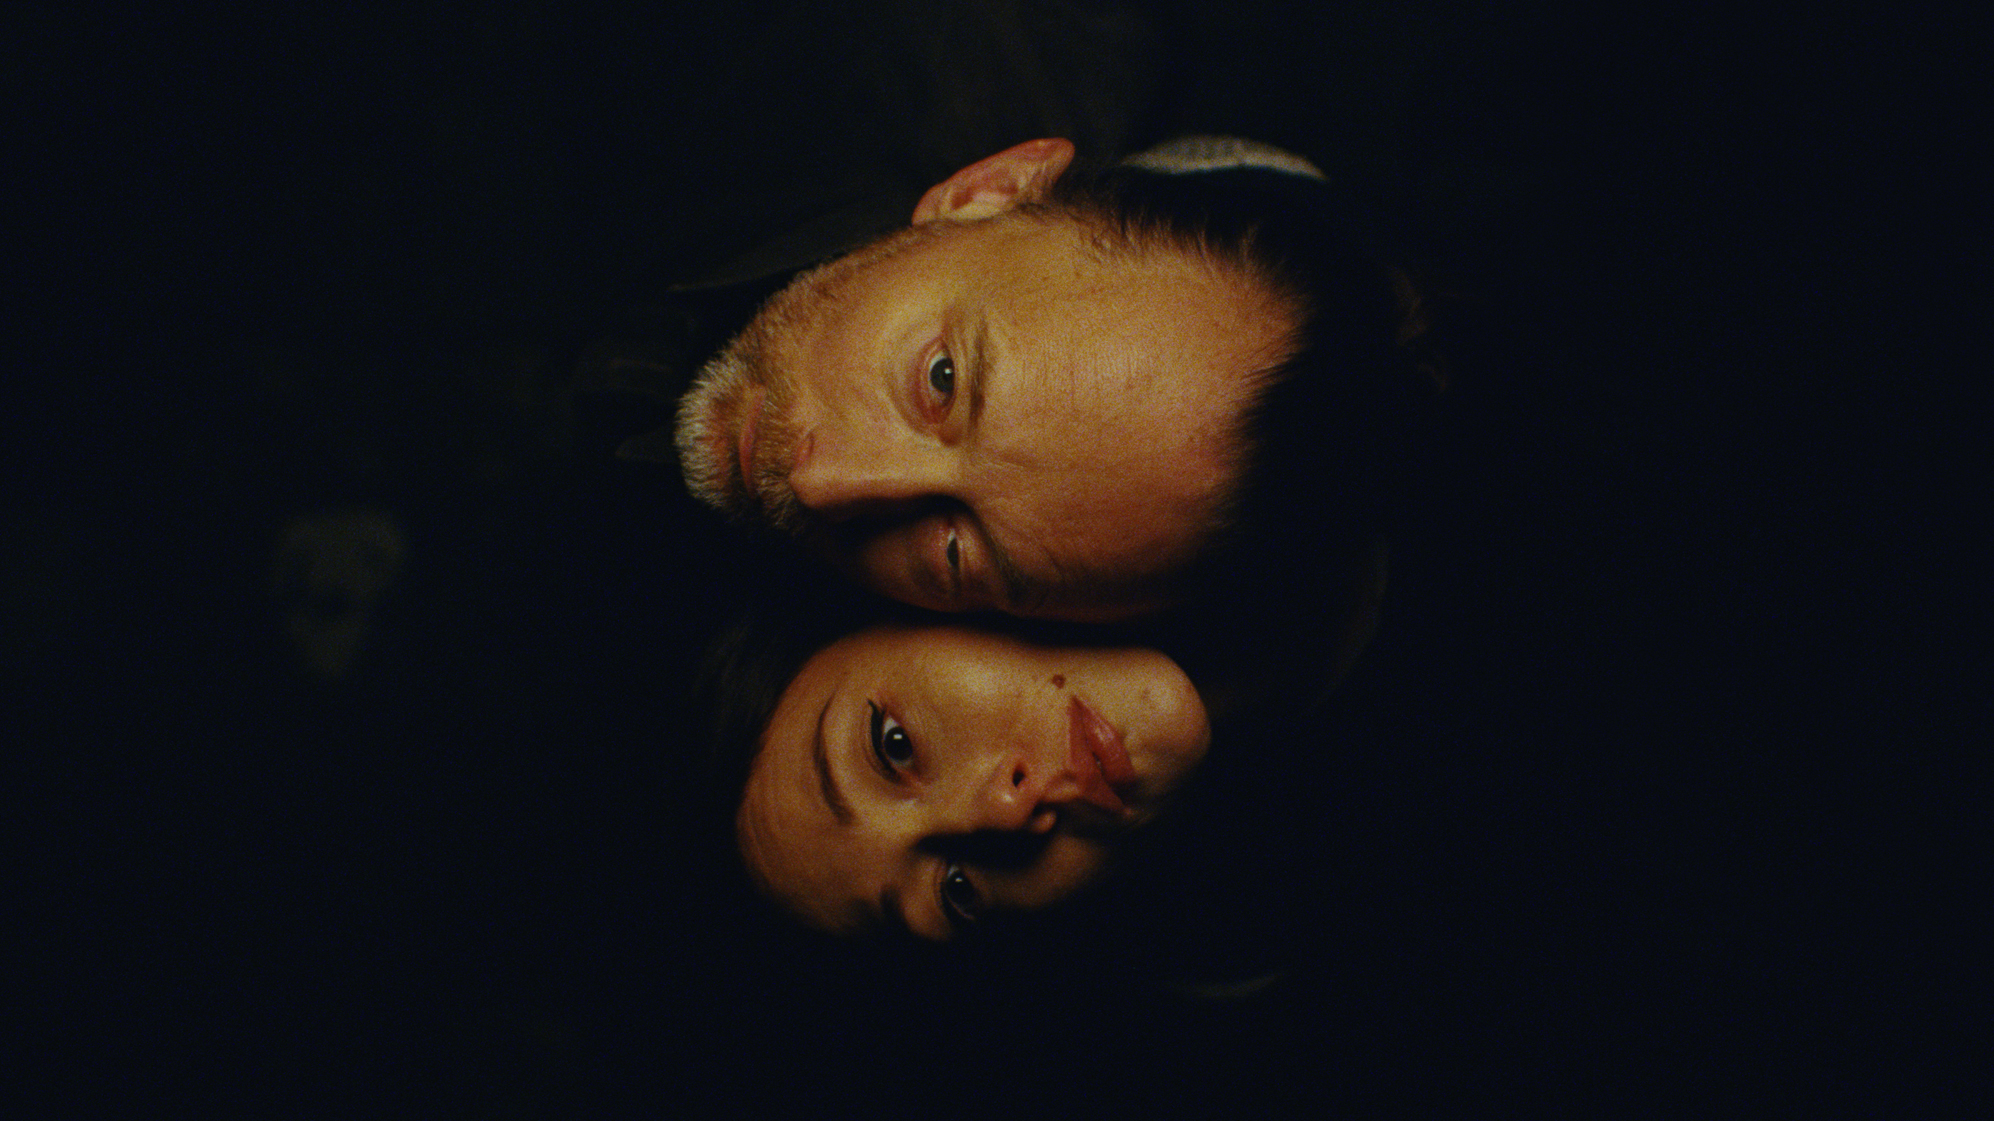 Thom Yorke and Dajana Roncione in a scene from the video for Yorke's ANIMA, directed by Paul Thomas Anderson.